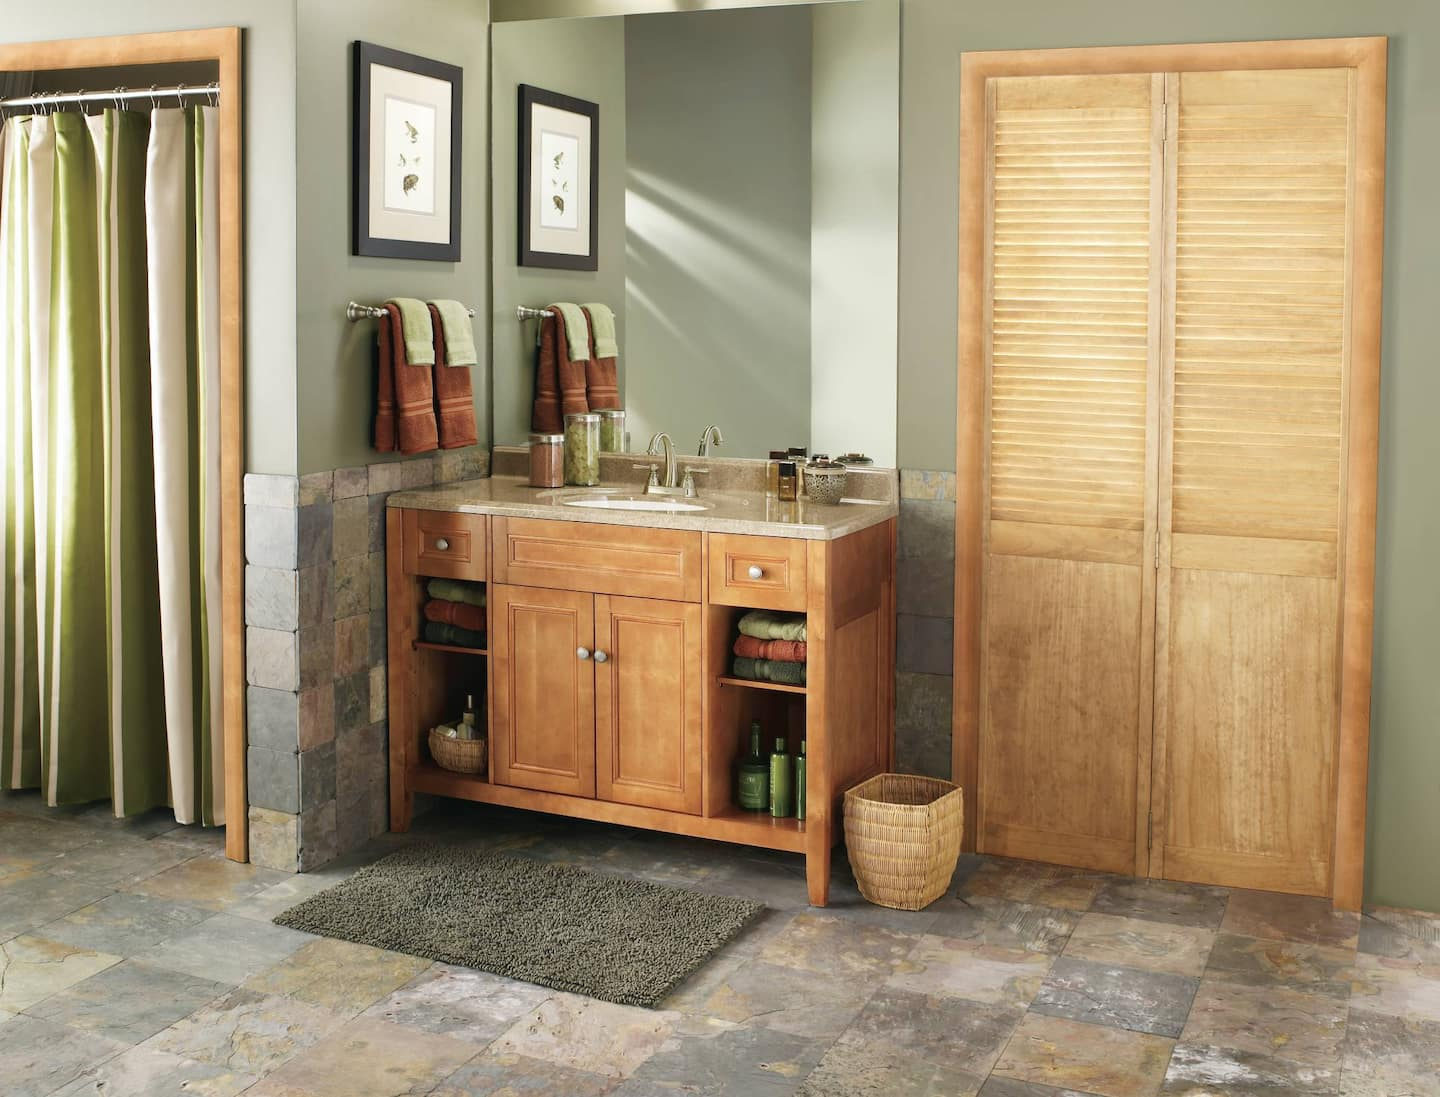 Bathroom Remodel Asheville Nc top 10 best asheville nc remodeling contractors | angie's list